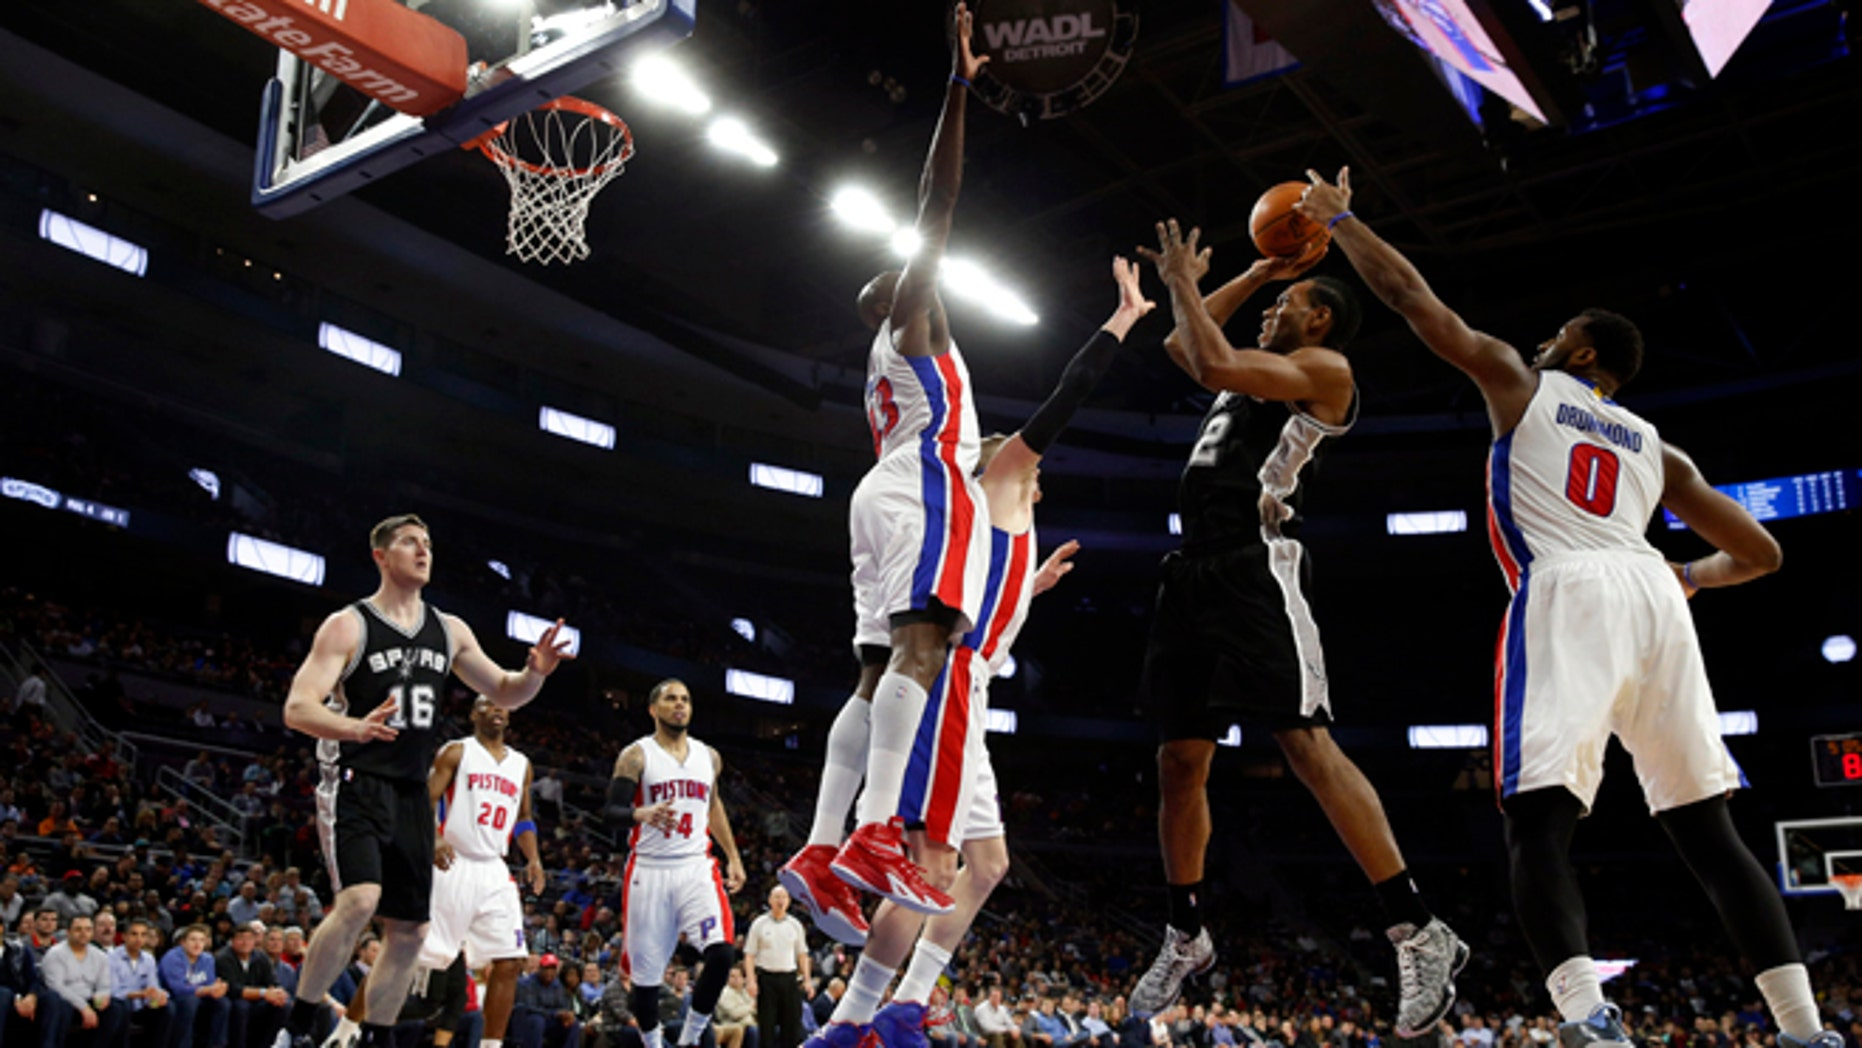 San Antonio Spurs forward Kawhi Leonard (2) shoots against the Detroit Pistons in the first half of an NBA basketball game in Auburn Hills, Mich., Wednesday, Feb. 11, 2015. (AP Photo/Paul Sancya)